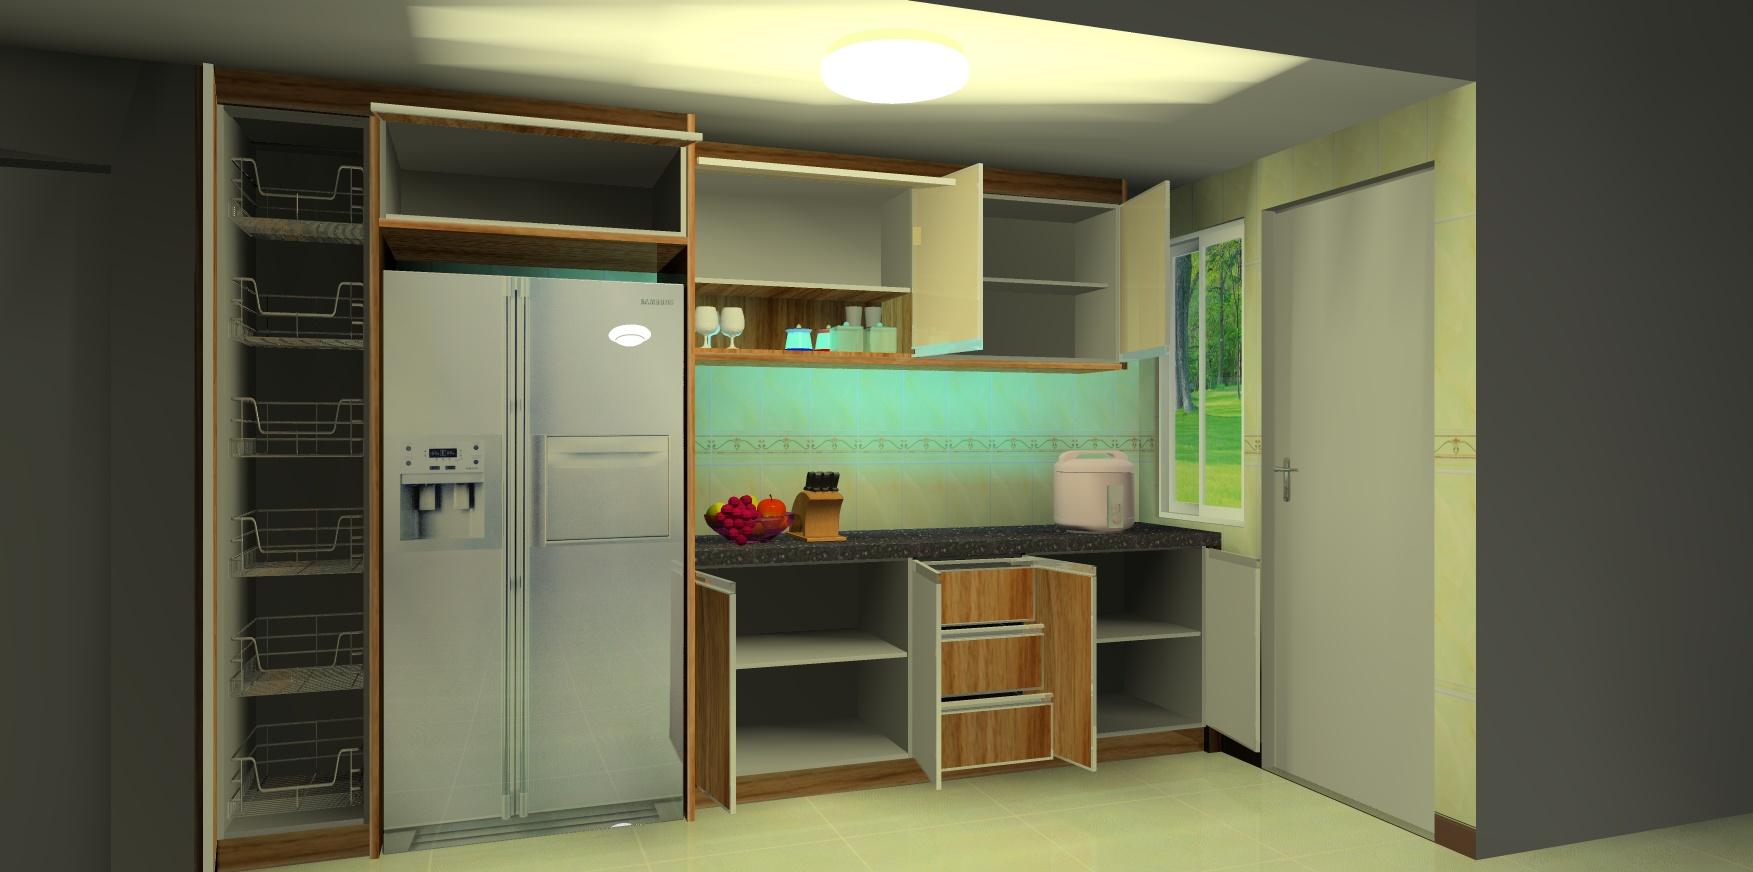 custom kitchen cabinet cabinets designs green tree enterprise | we are specialist in ...